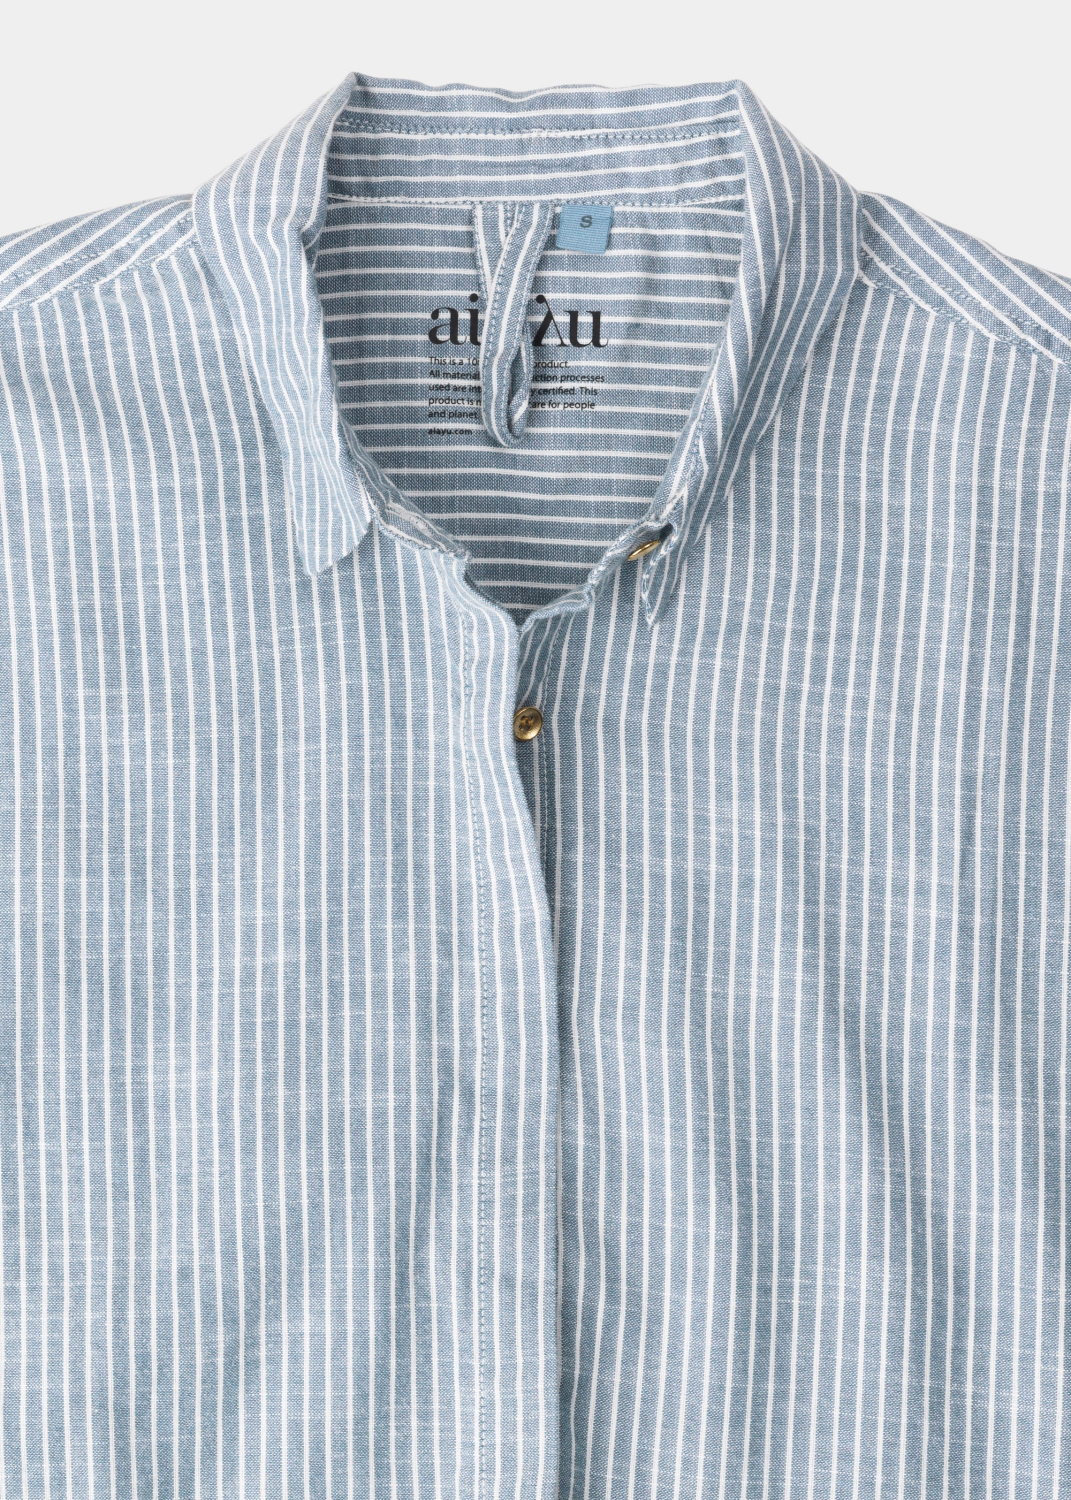 Shirts - Shirt Striped